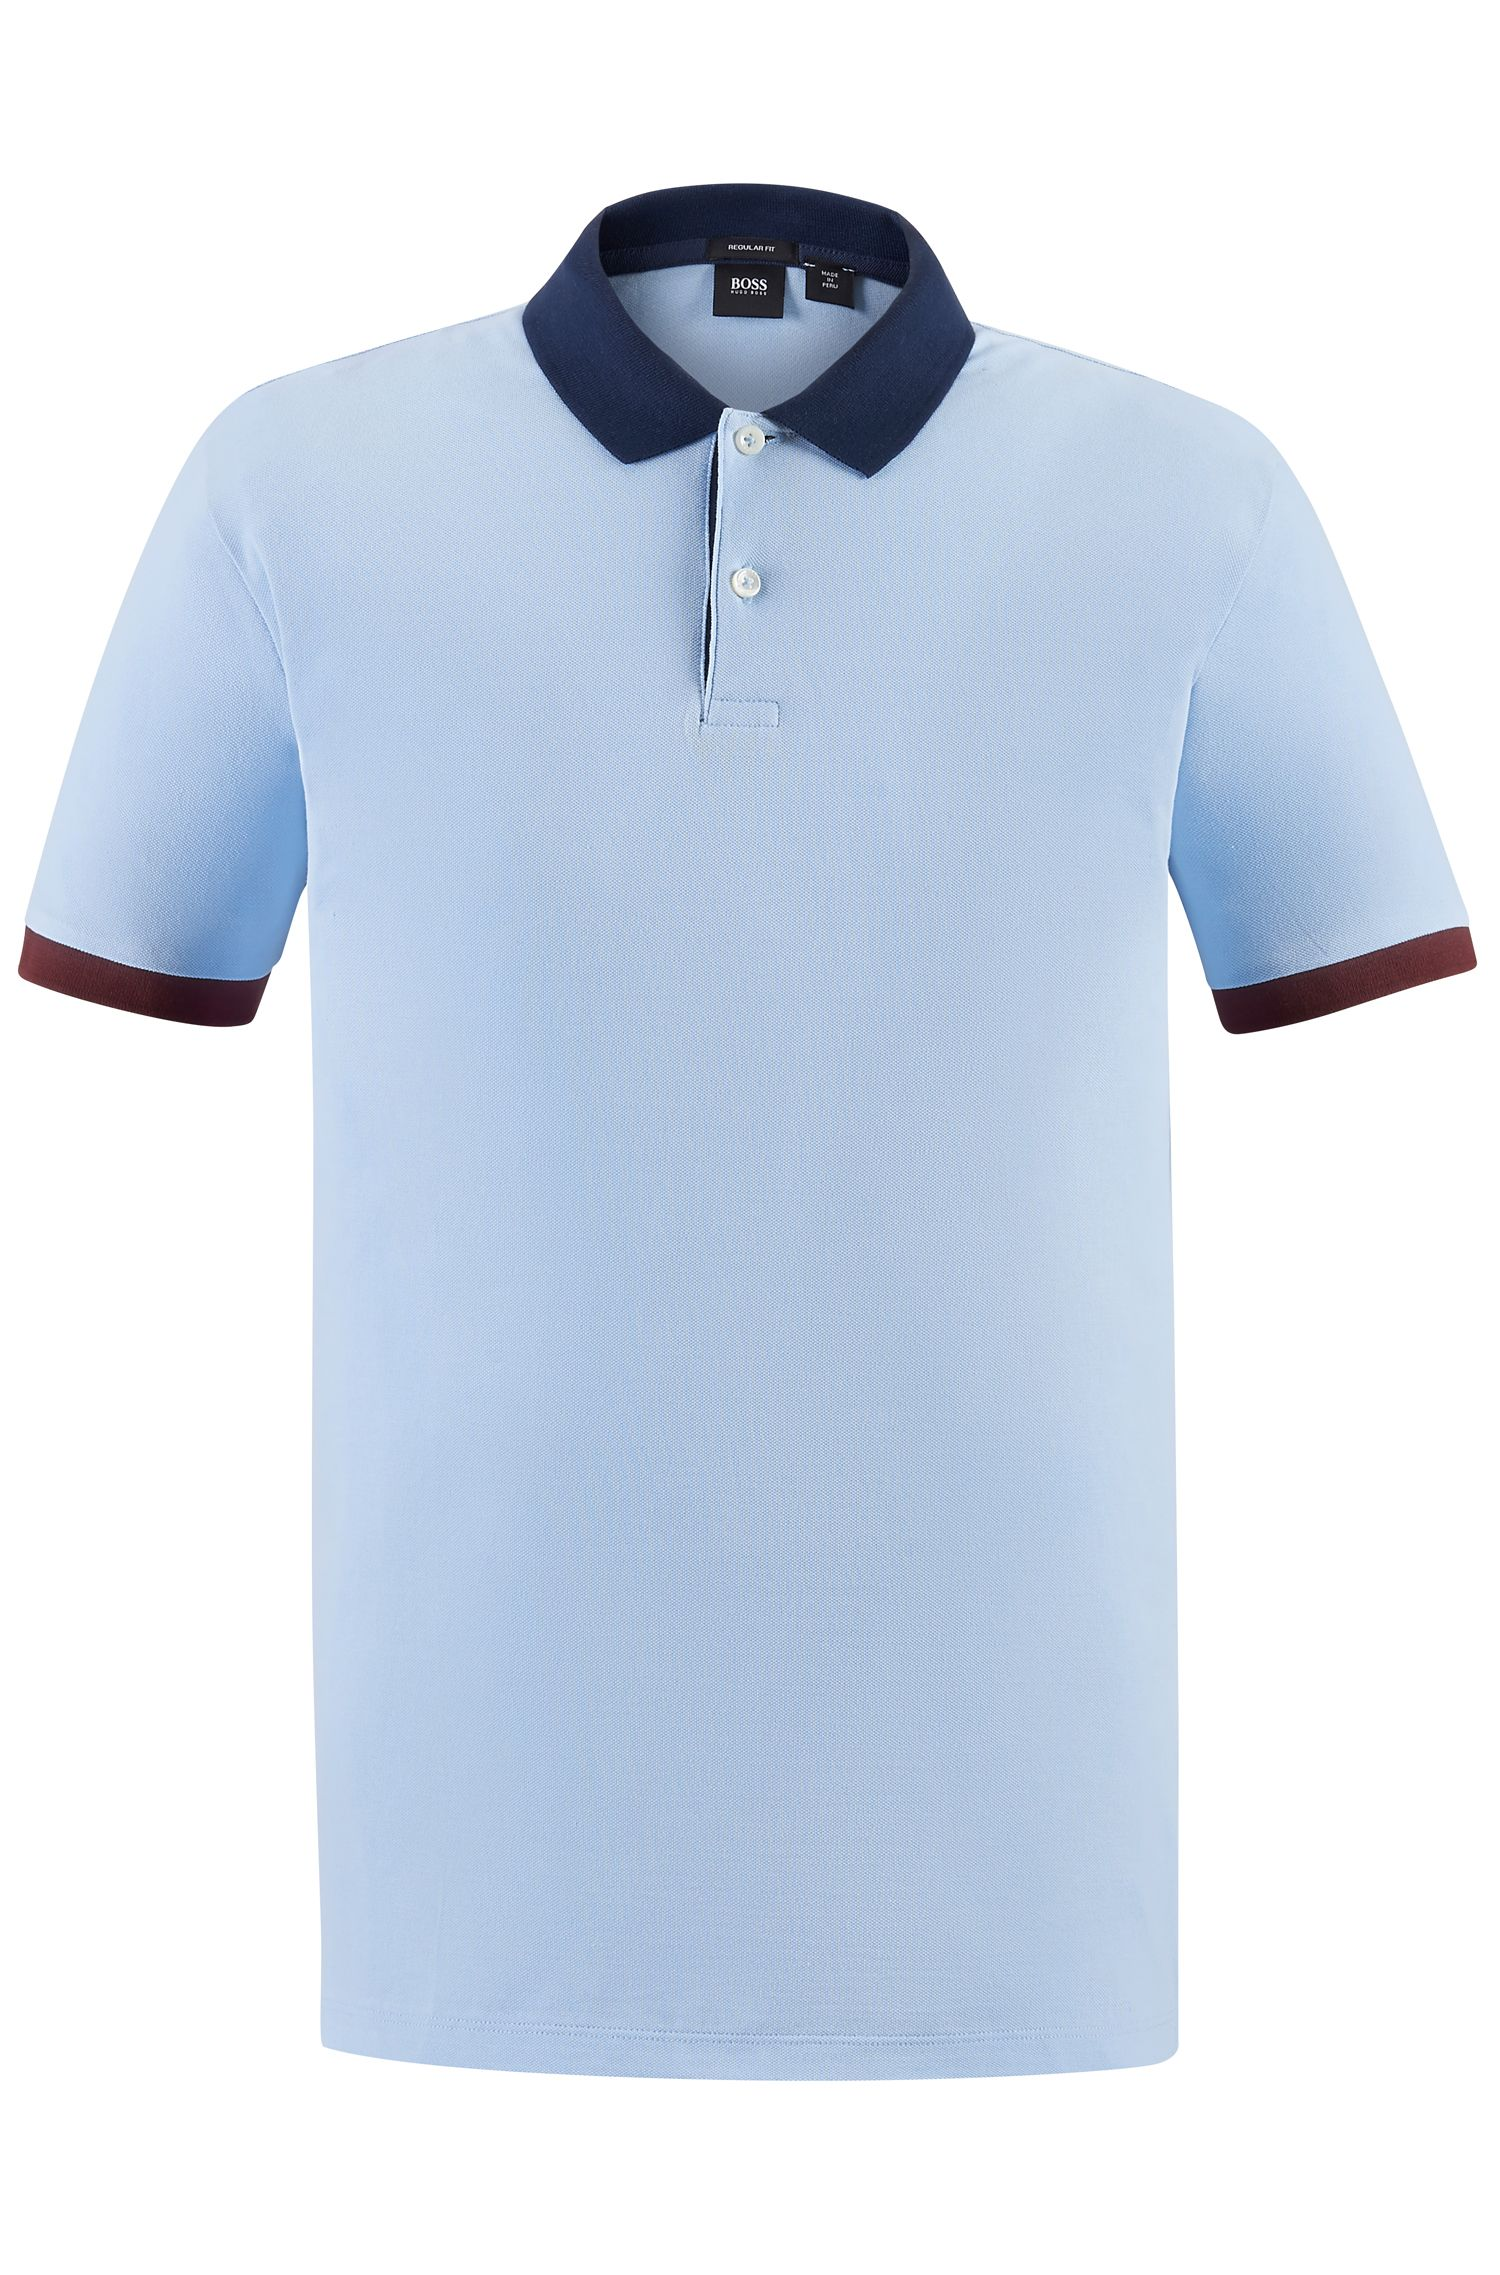 Piqué Pima Cotton Polo Shirt, Regular Fit | Parlay